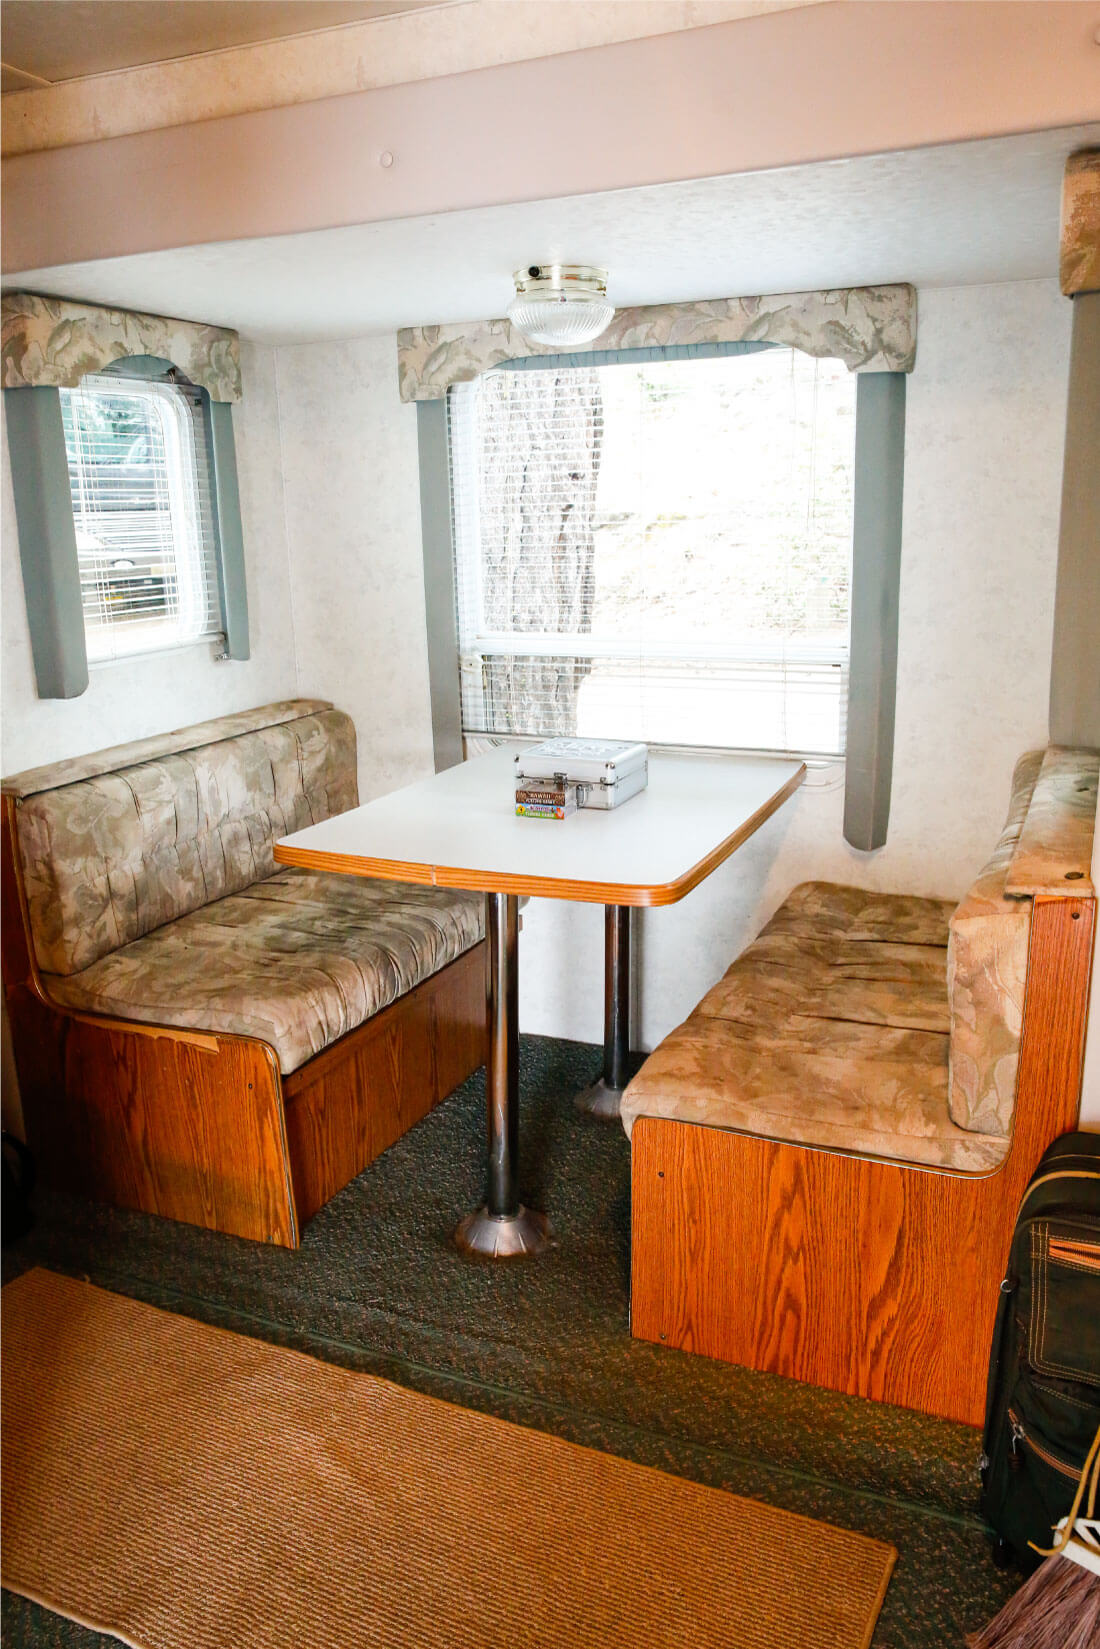 Tips for RVing from someone who hated tent camping - the inside of our RV 2